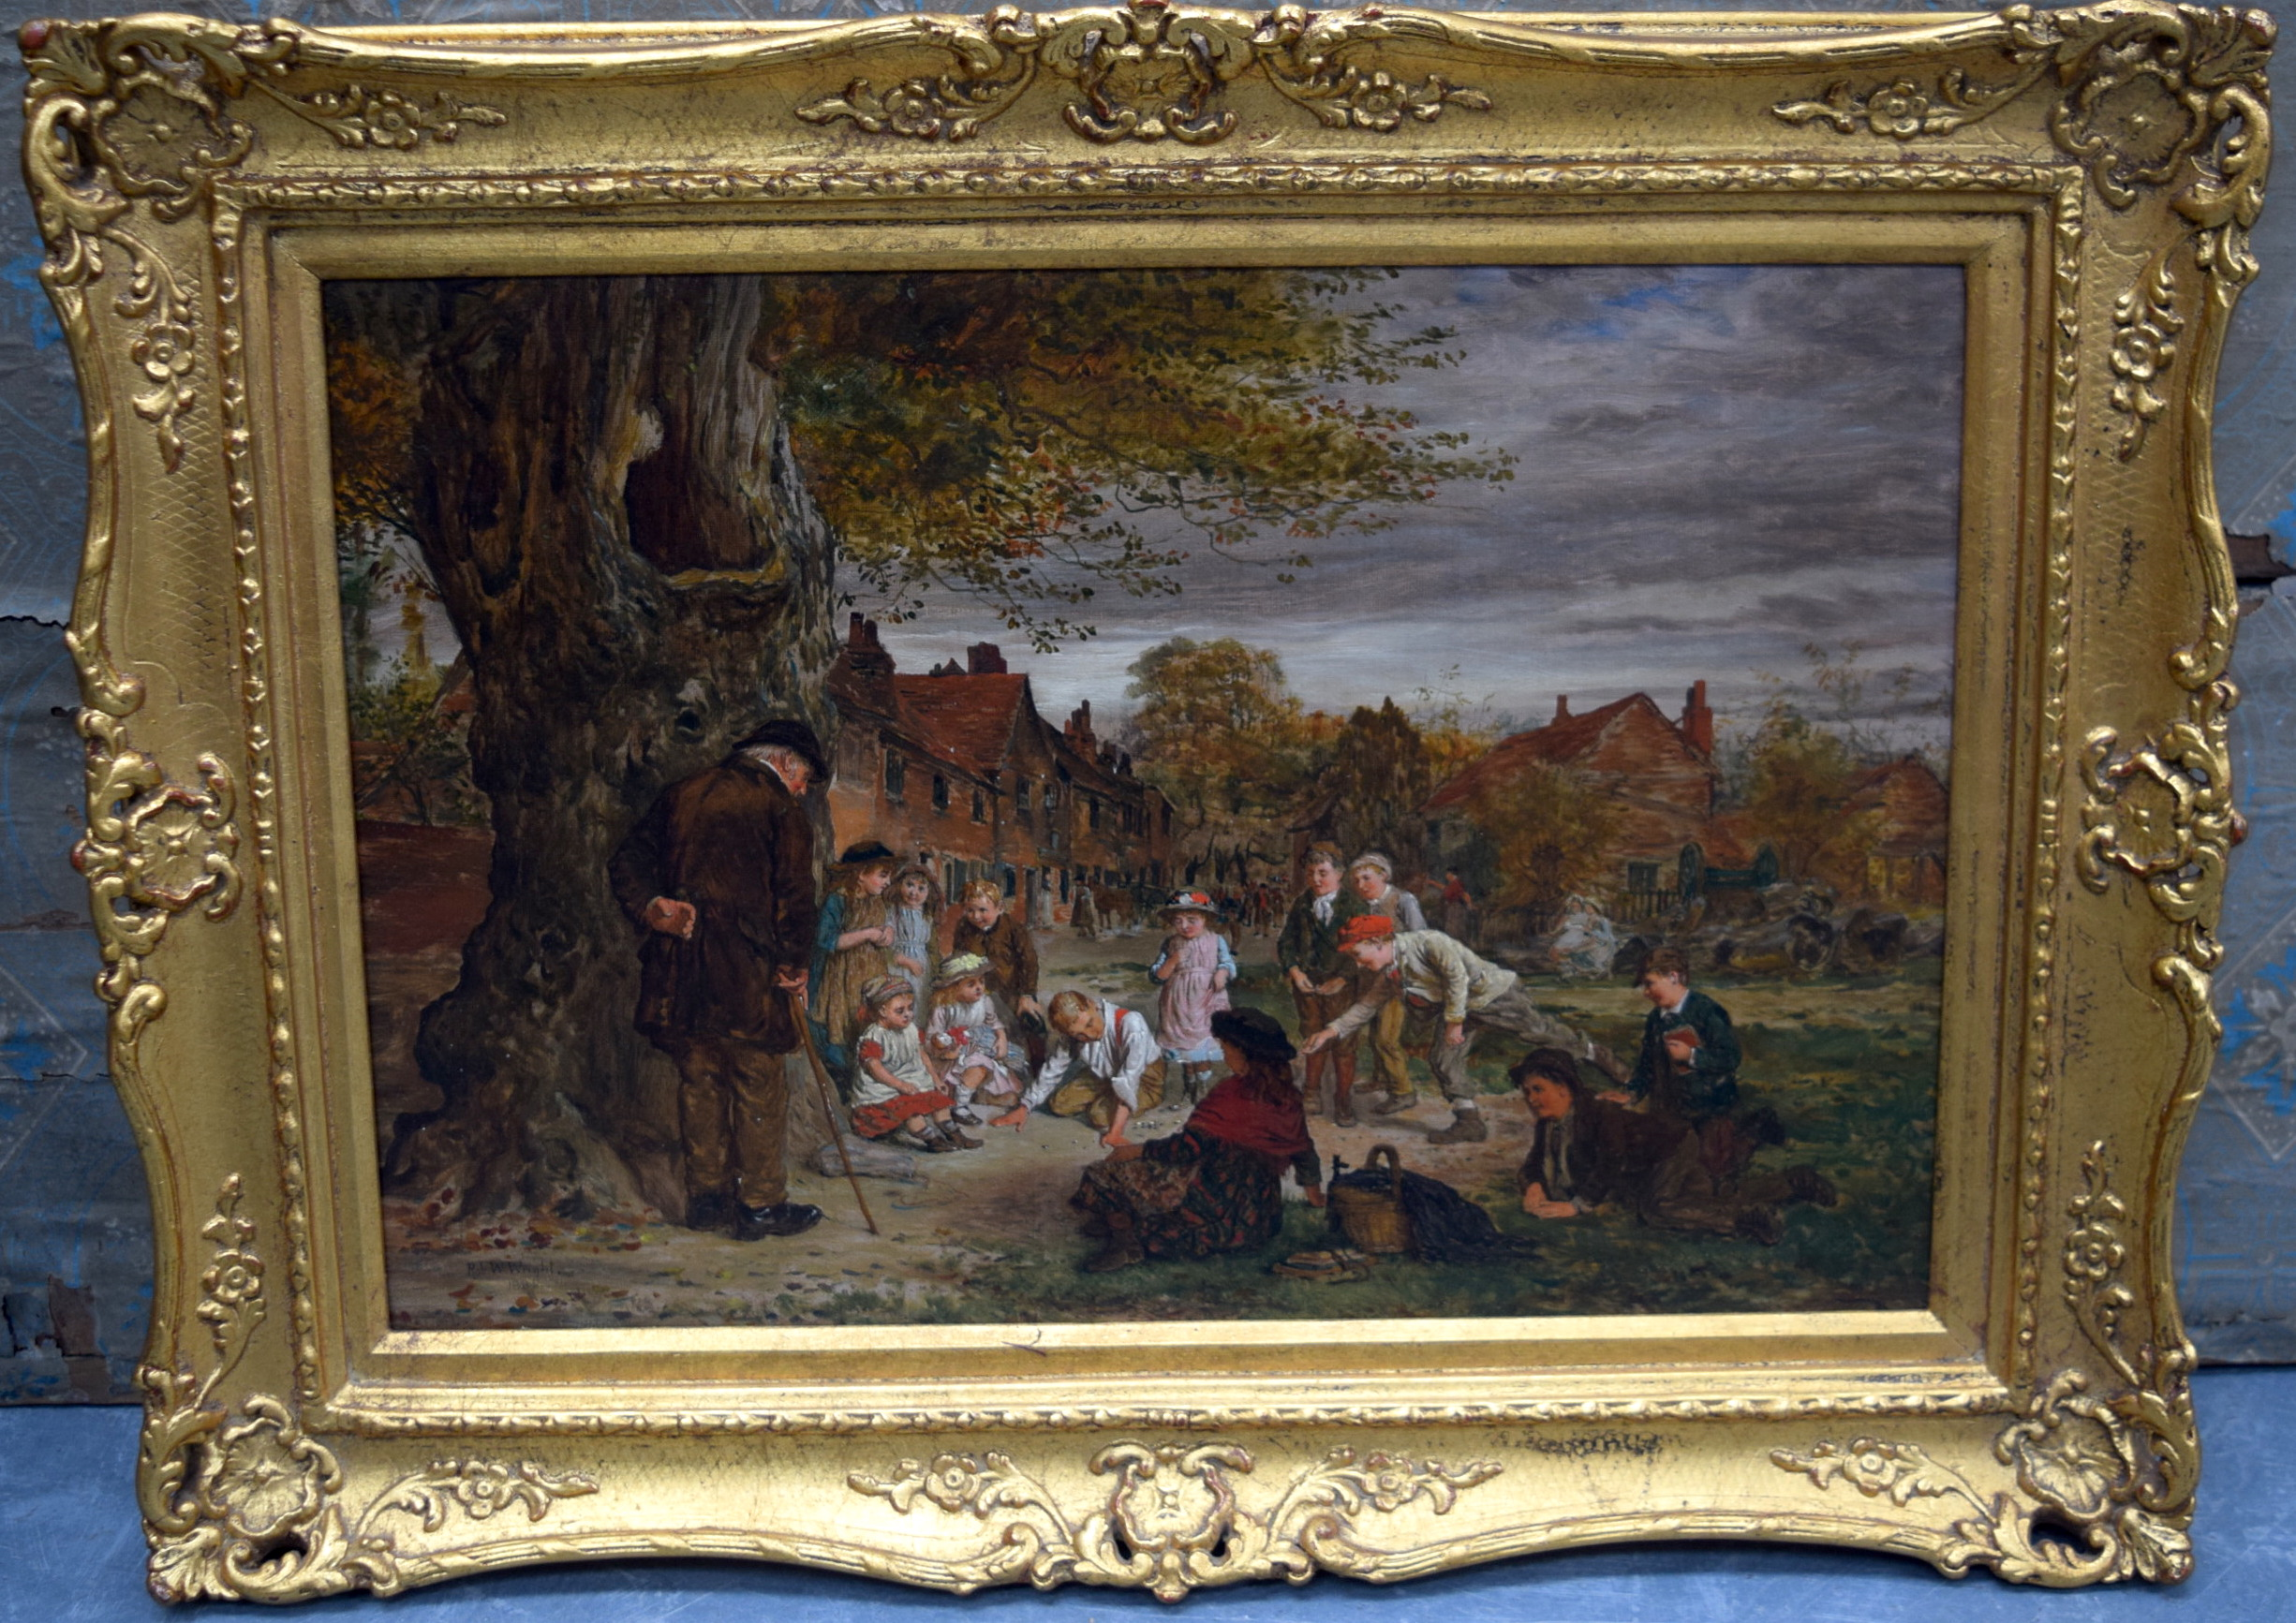 Lot 2243 - ROBERT WILLIAM WRIGHT (act 1870-1906) FRAMED OIL ON BOARD, signed & dated, children playing in the